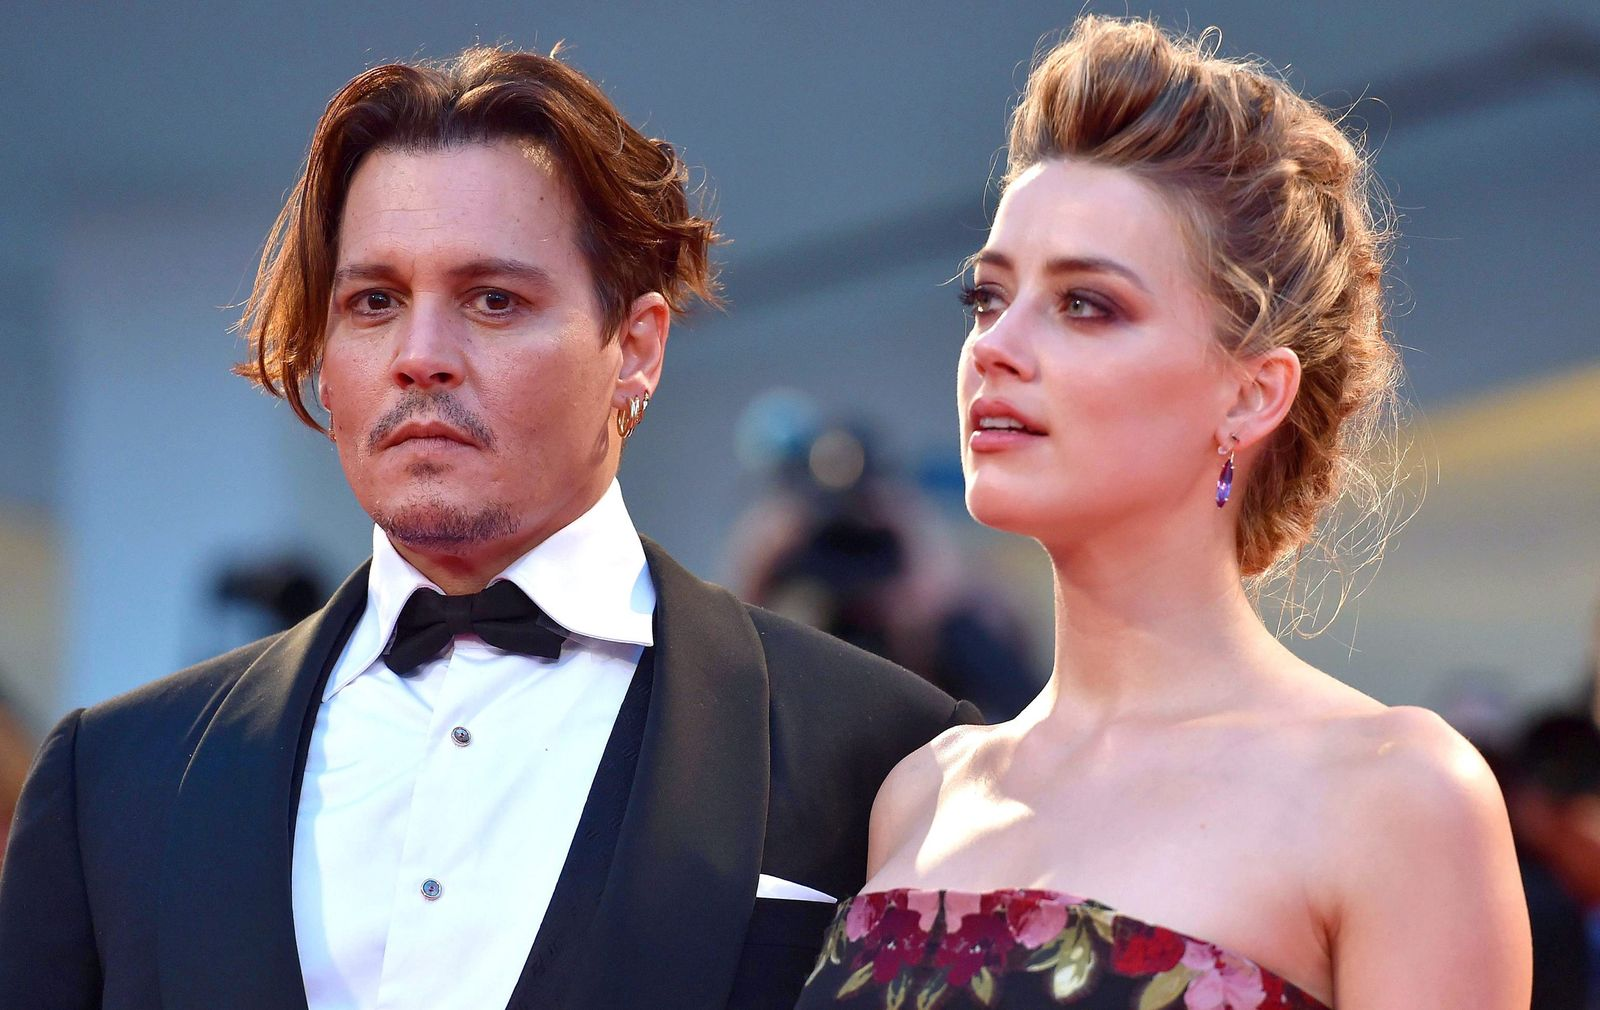 Johnny Depp and Amber Heard to divorce